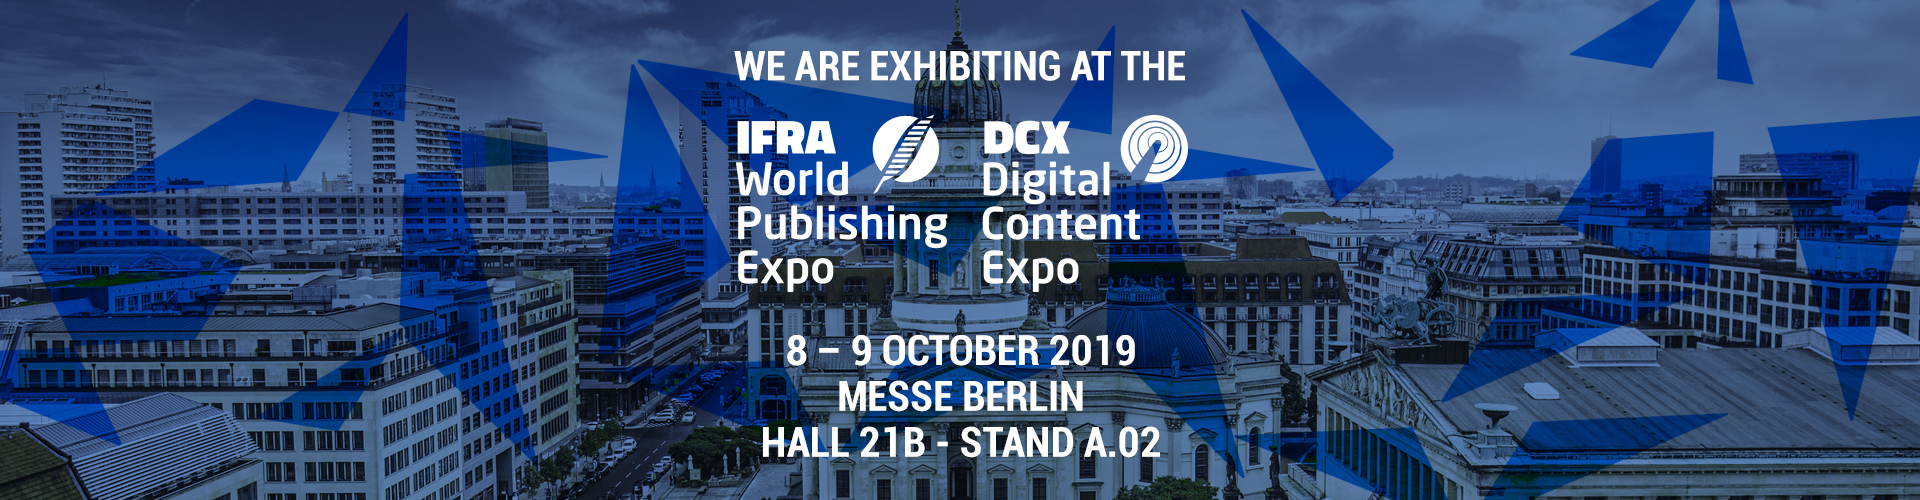 PageSuite Are Returning to Berlin for The World Publishing & DCX Expo!